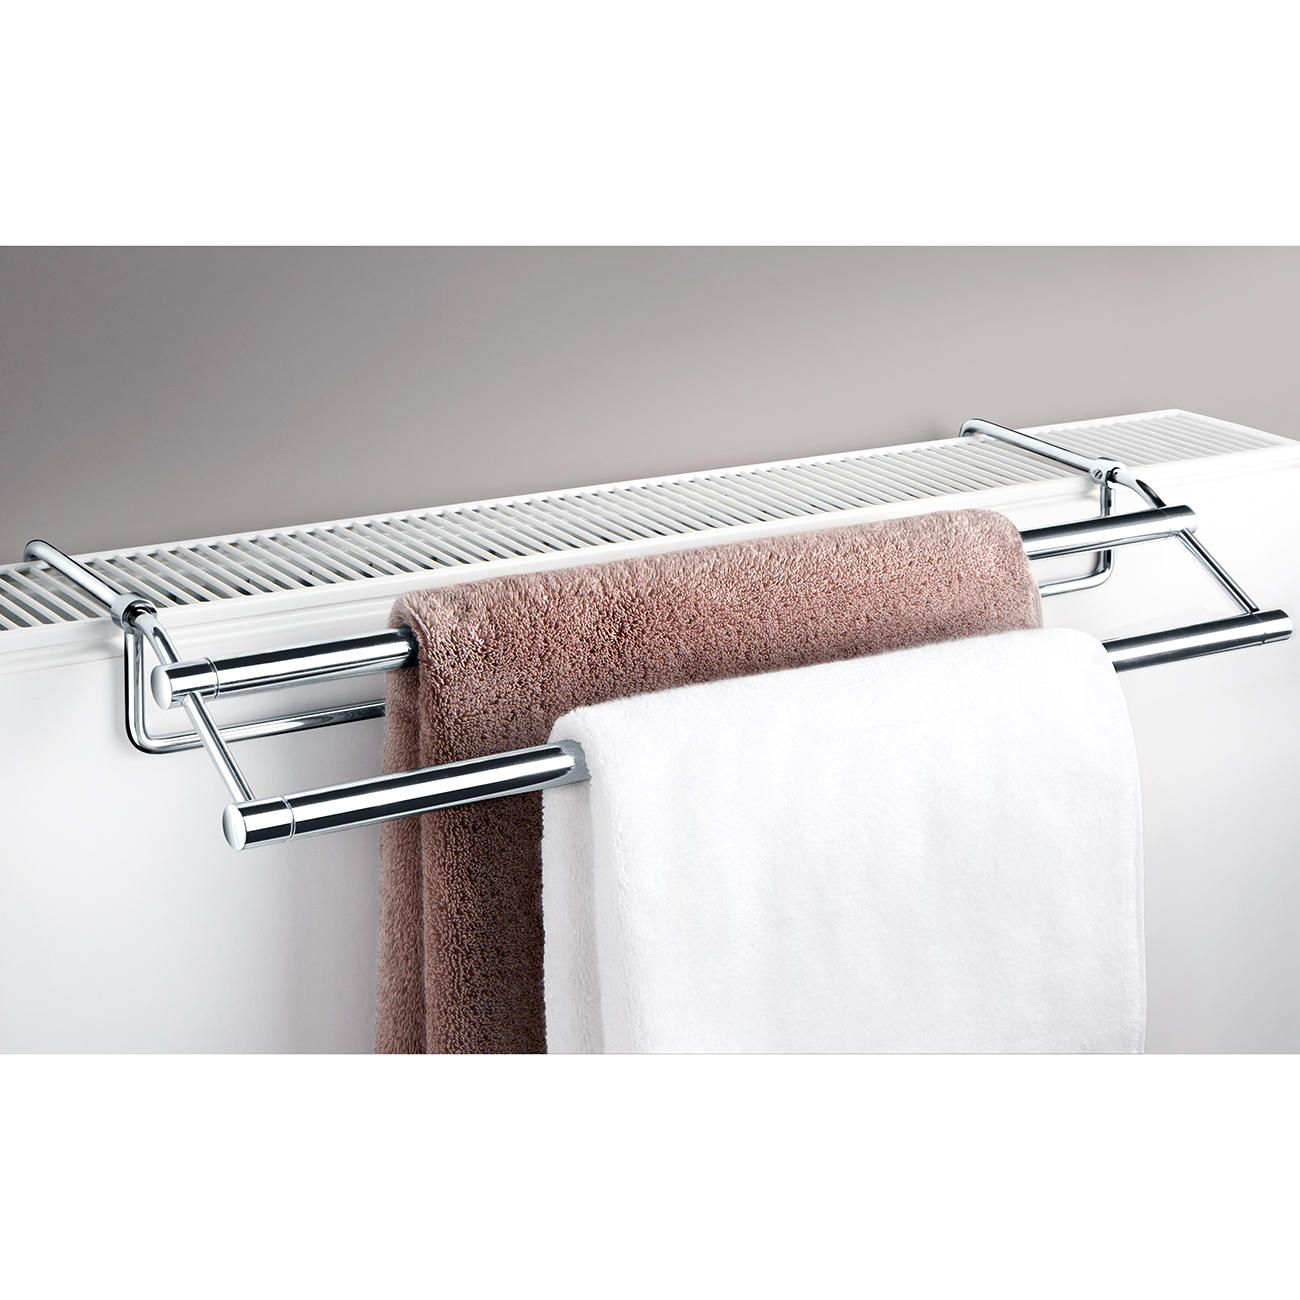 buy radiator towel rail 3 year product guarantee. Black Bedroom Furniture Sets. Home Design Ideas